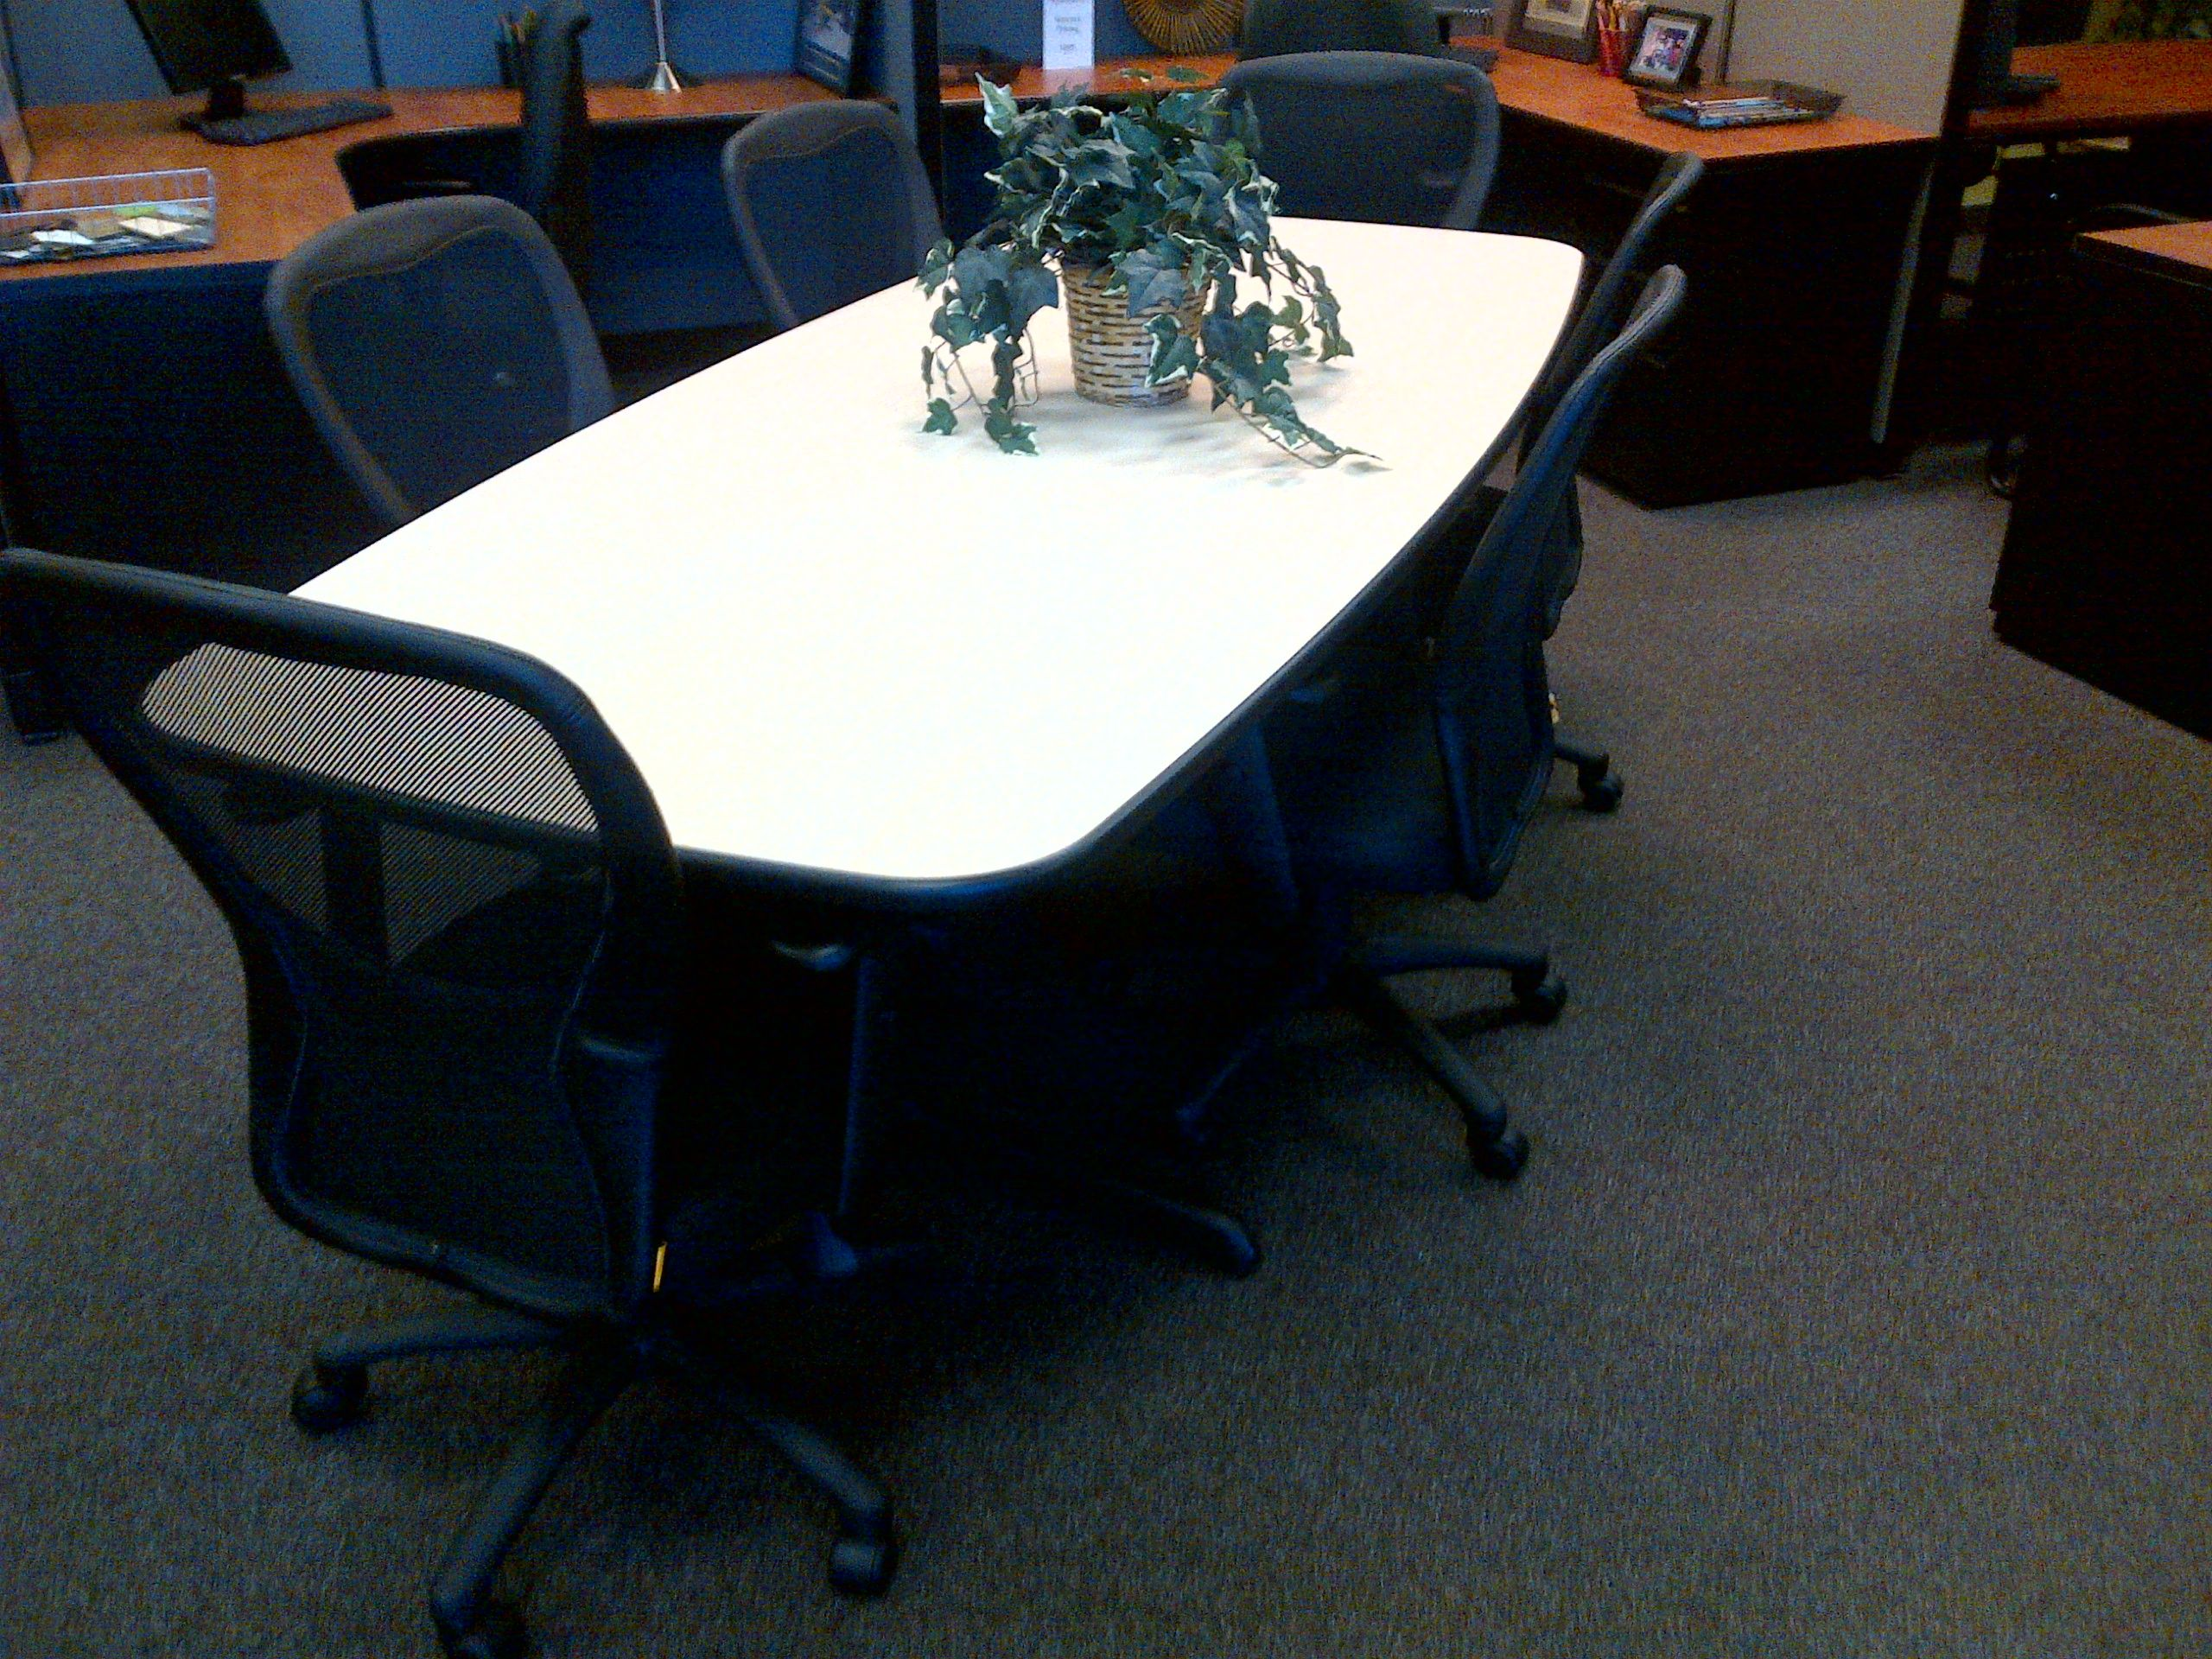 BoatShaped Conference Table New Life Office